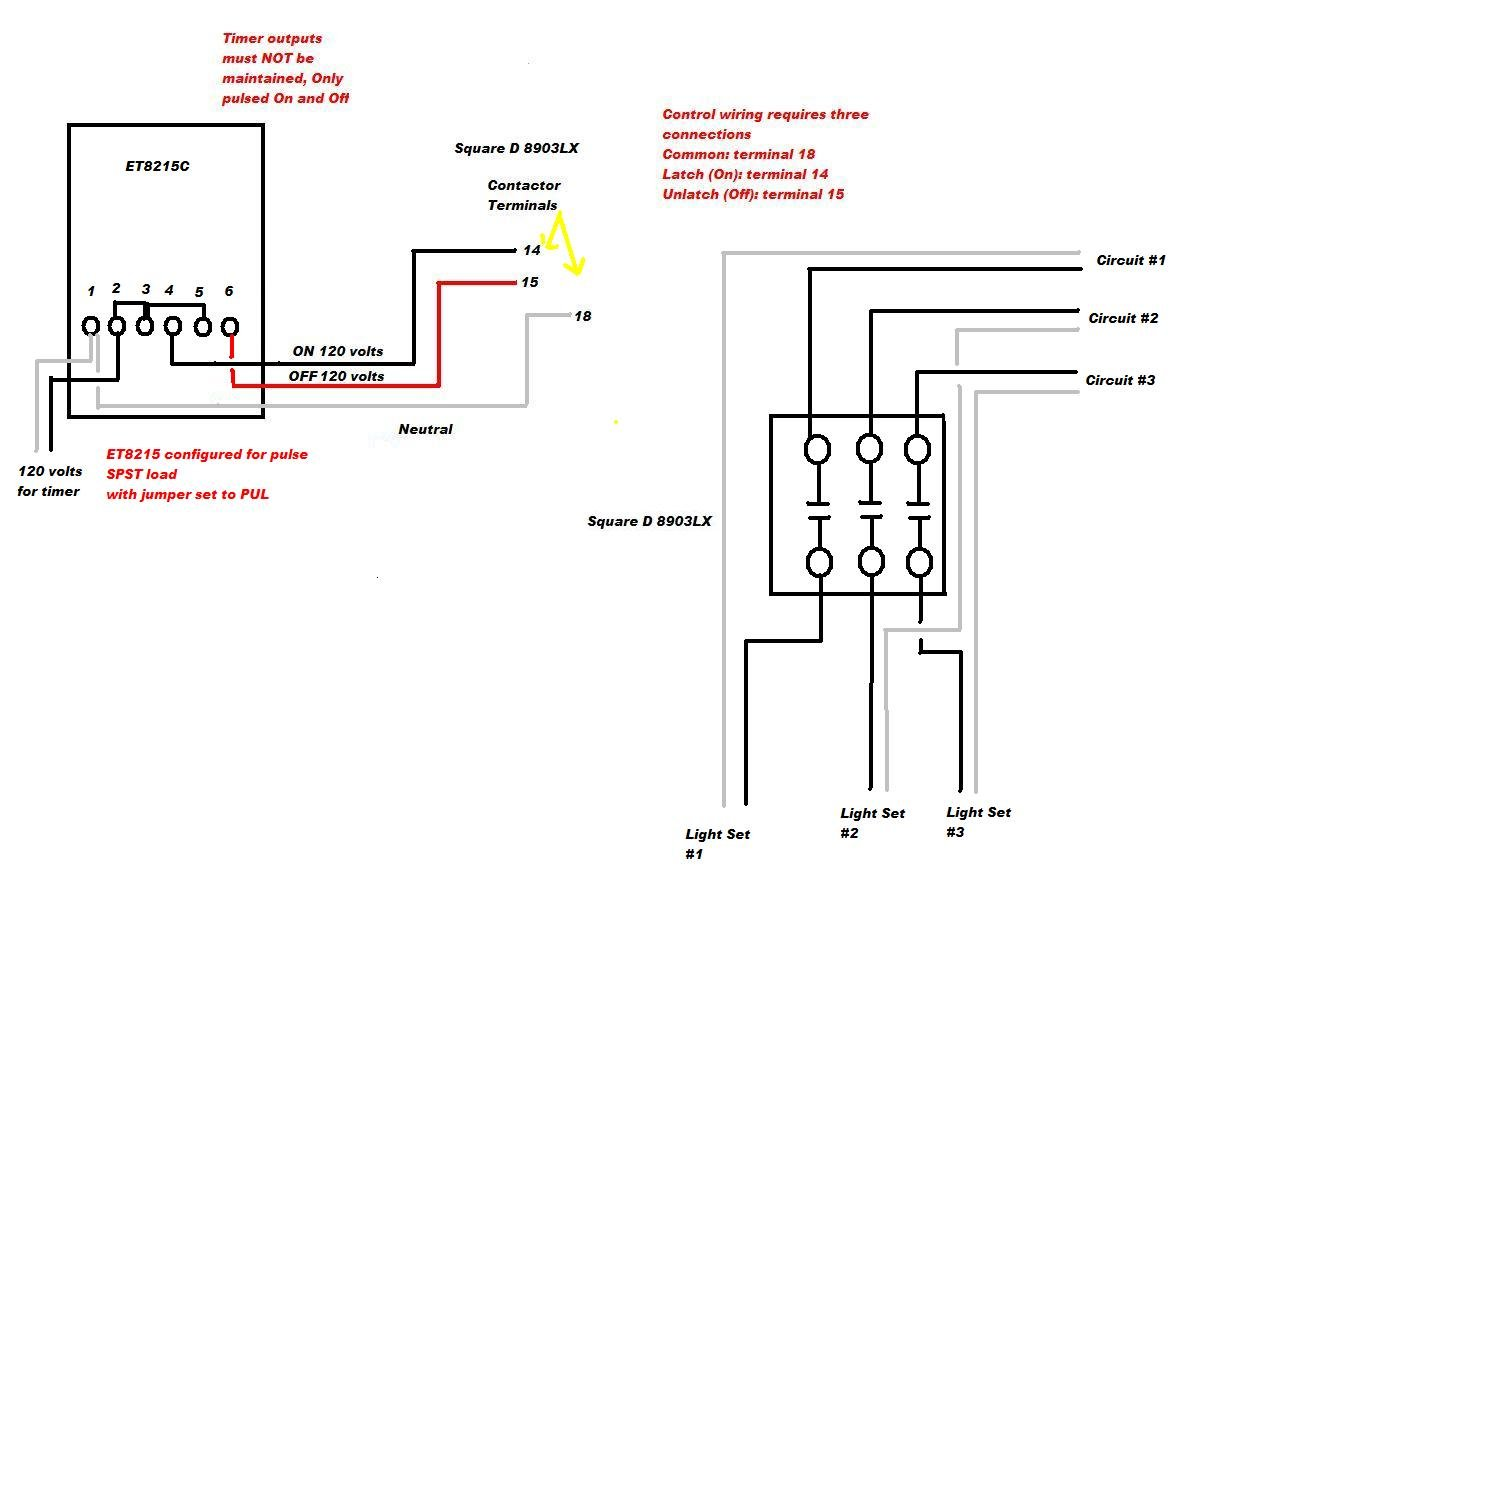 Wiring Diagram For Square D Lighting Contactor : Square d lighting contactor wiring diagram